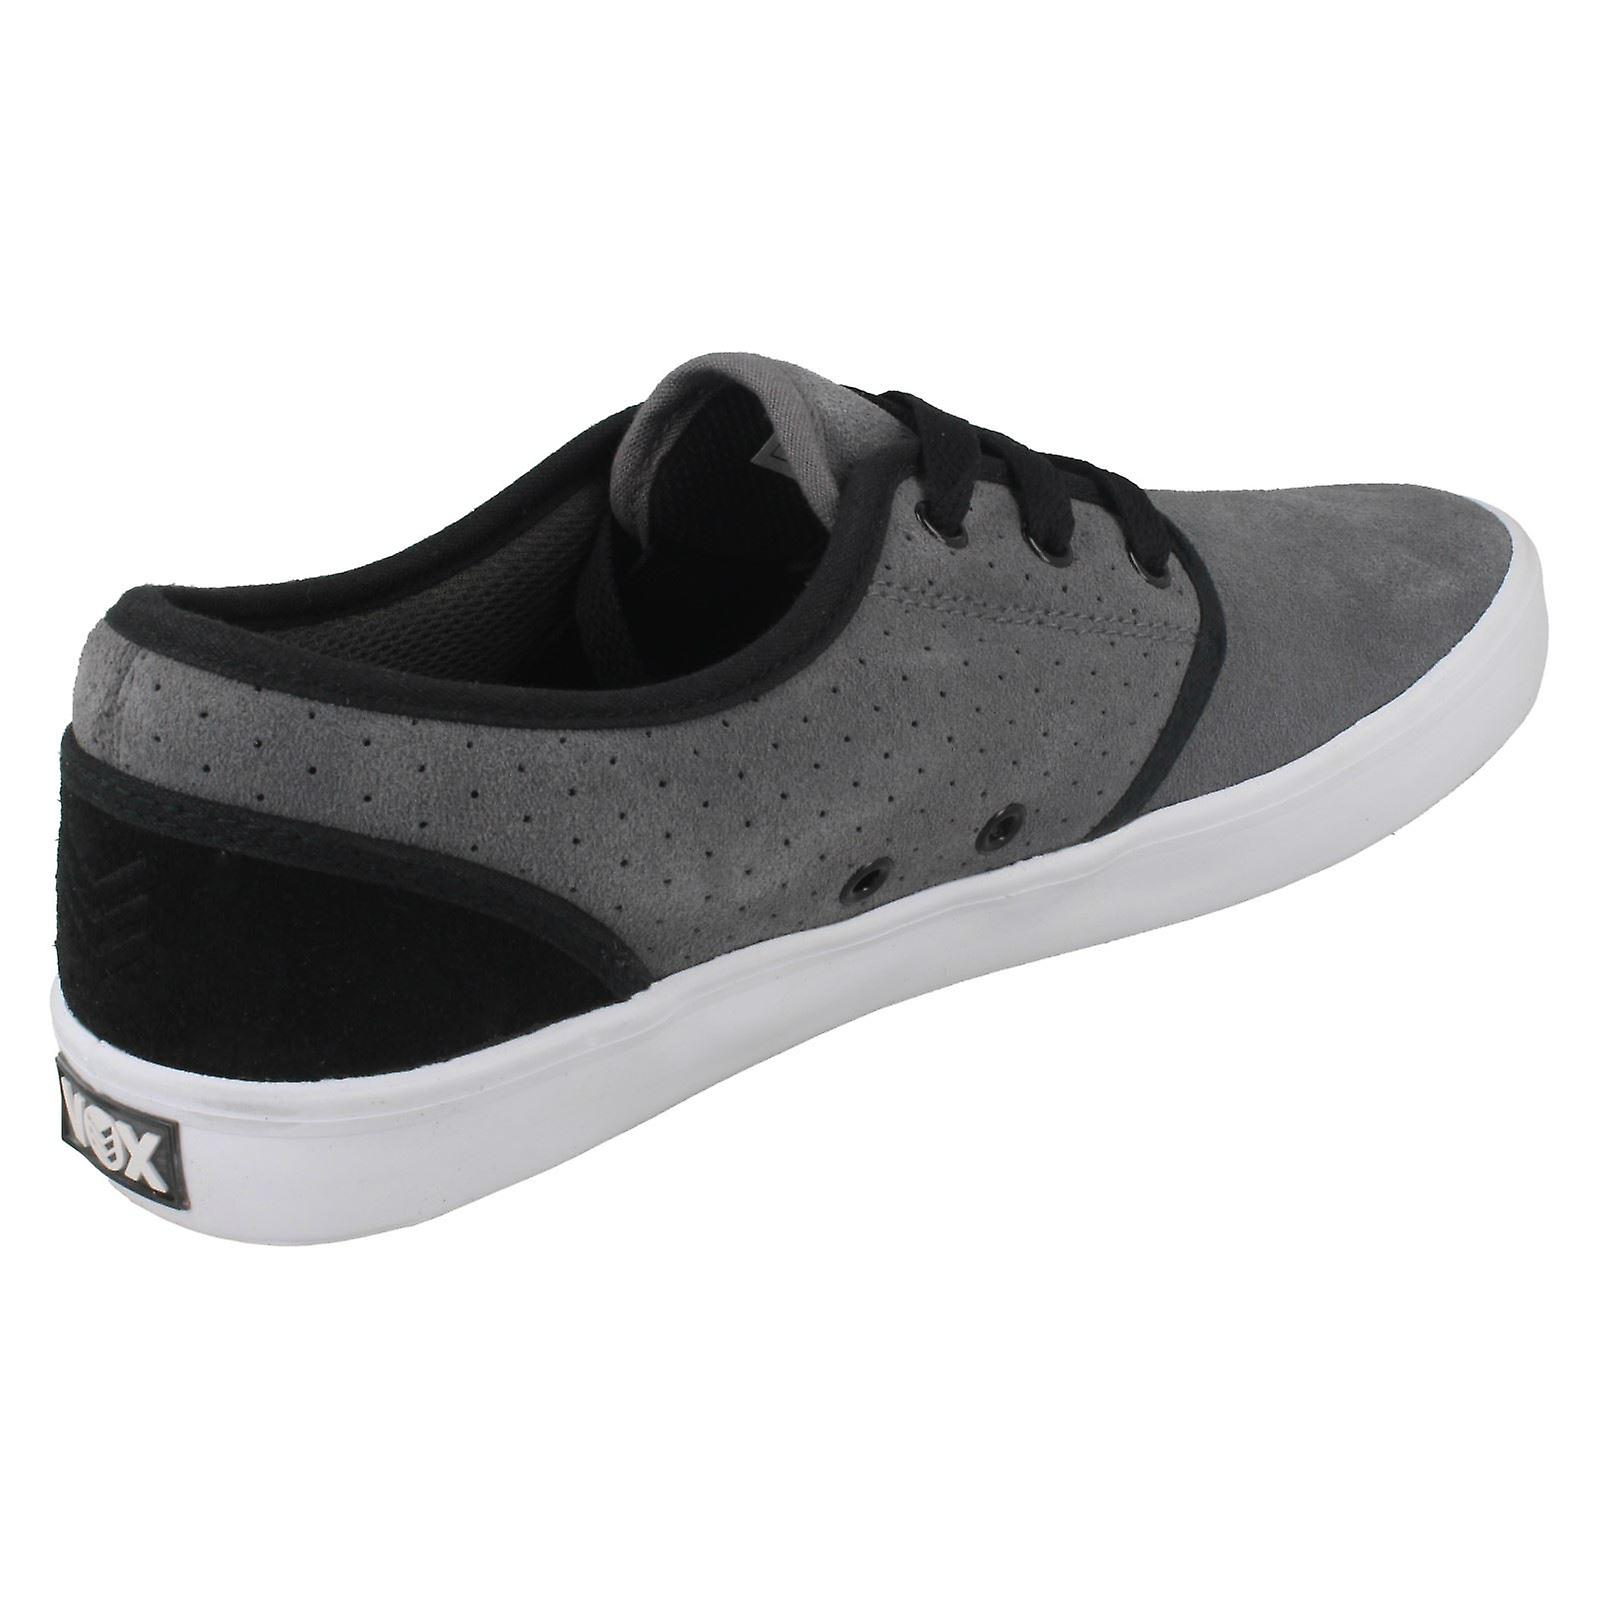 Casual Size White US EU 40 Mens 7 Suede Size Slacker Inc Dark Footwear Shoes 6 Vox Size Black Grey UK zxqwUt